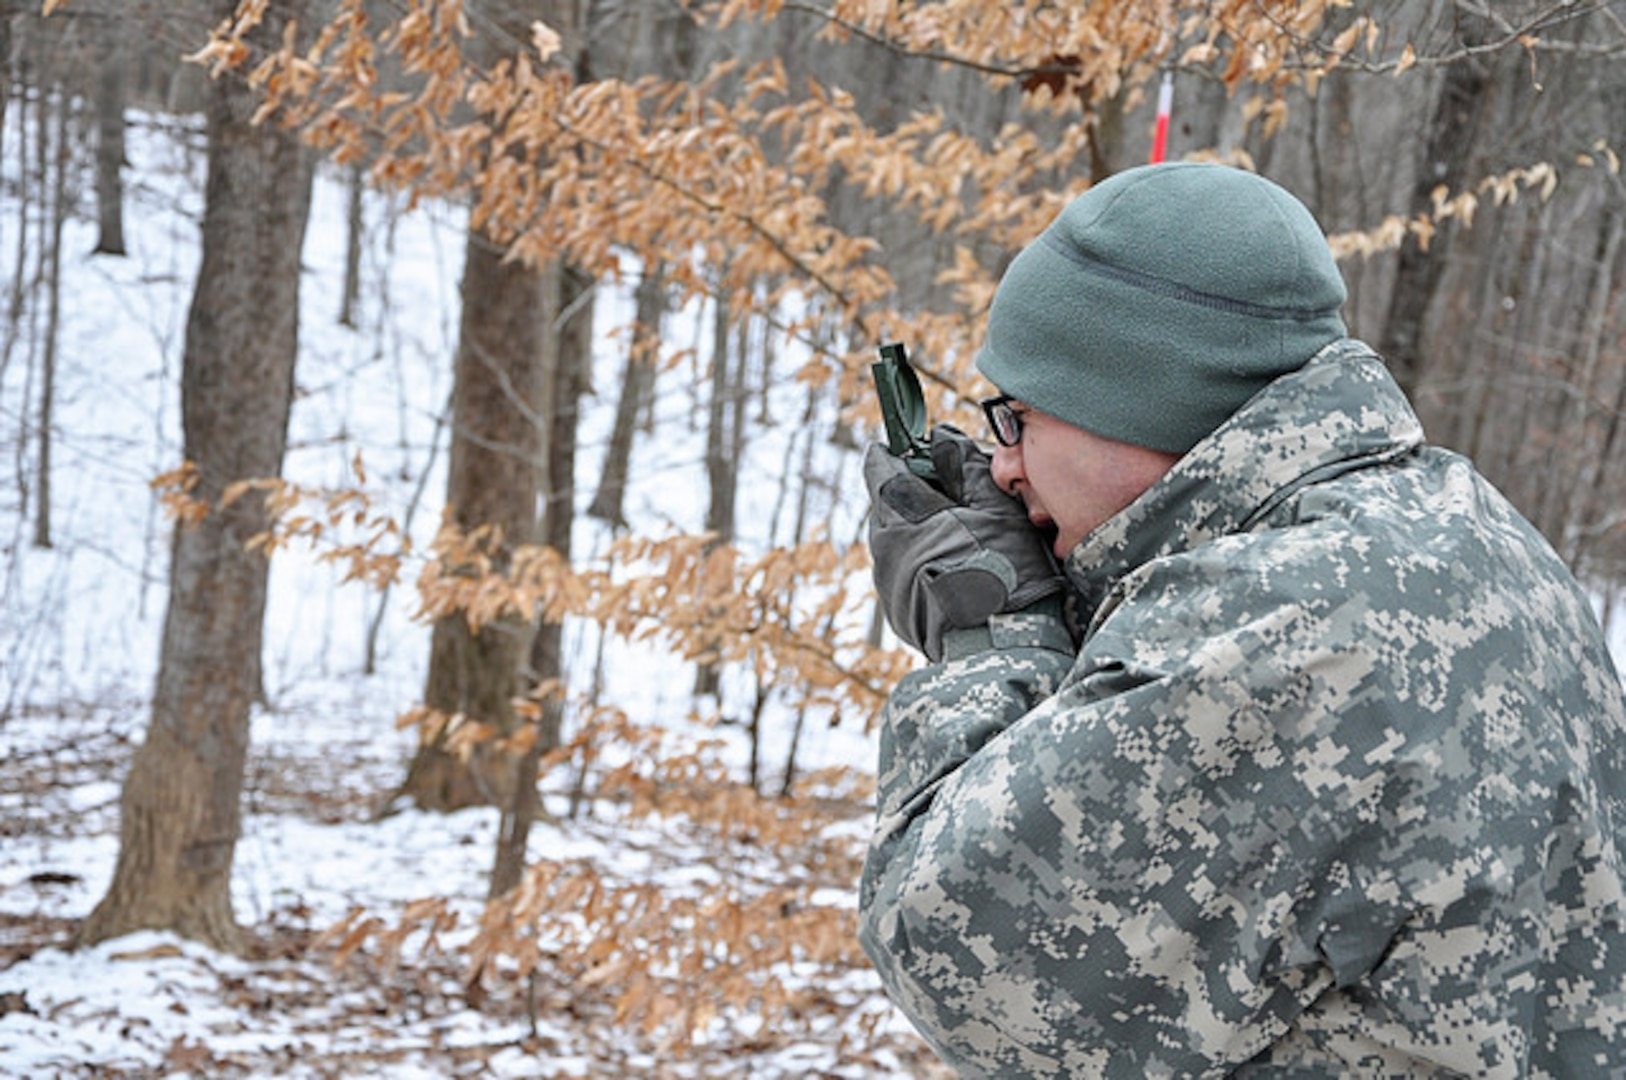 Officer candidates from Class 57 of the Virginia National Guard's Officer Candidate School conduct land navigation training Jan. 25, 2014, at Fort Pickett, Va., during the Zero Phase of the course. For many of the candidates, this was their first drill with the OCS program. (Photo by Staff Sgt. Terra C. Gatti, Virginia Guard Public Affairs)